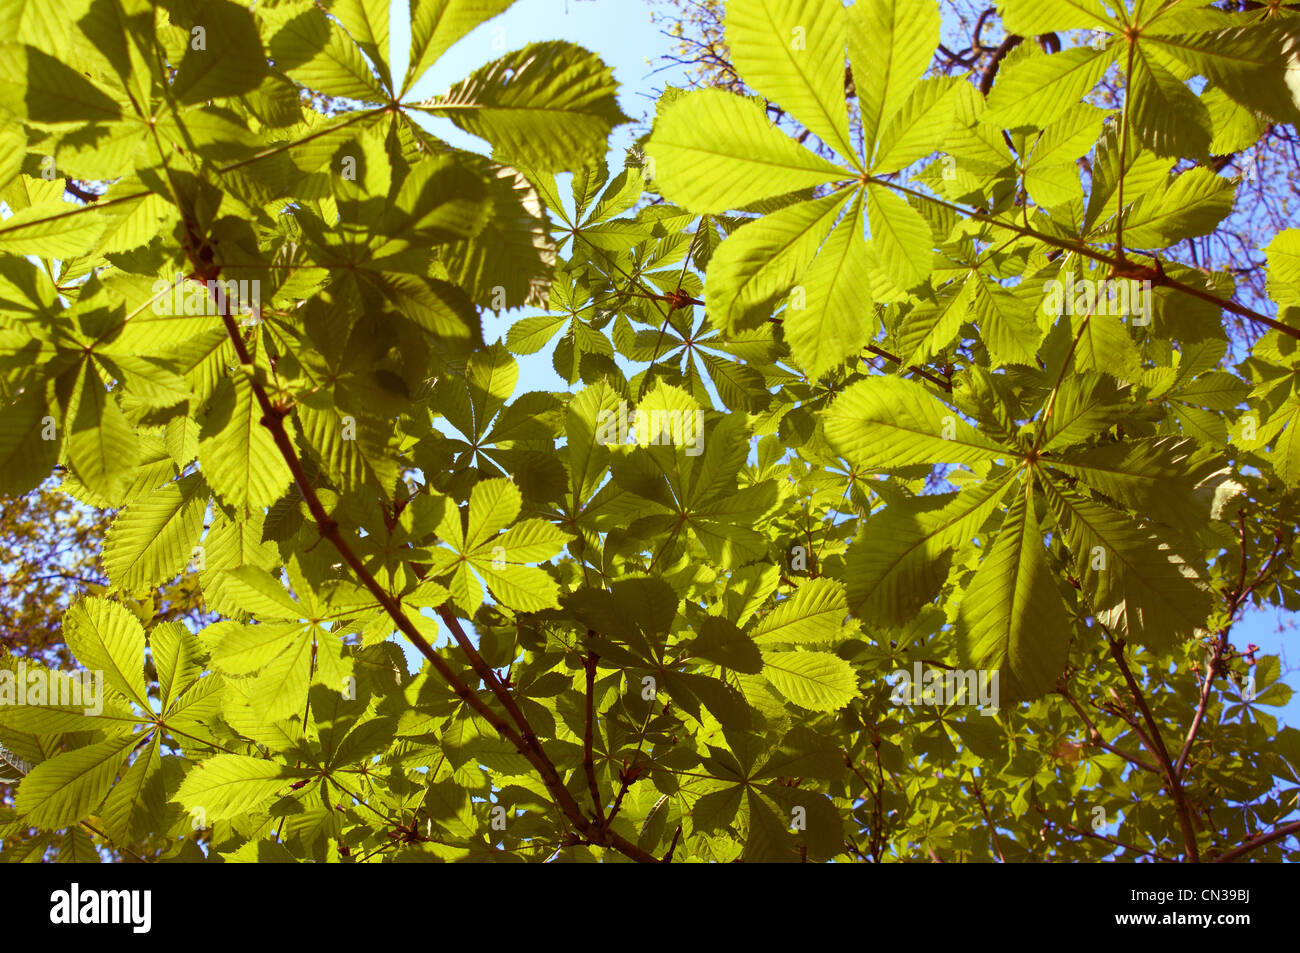 Sunlight through horse chestnut leaves - Stock Image